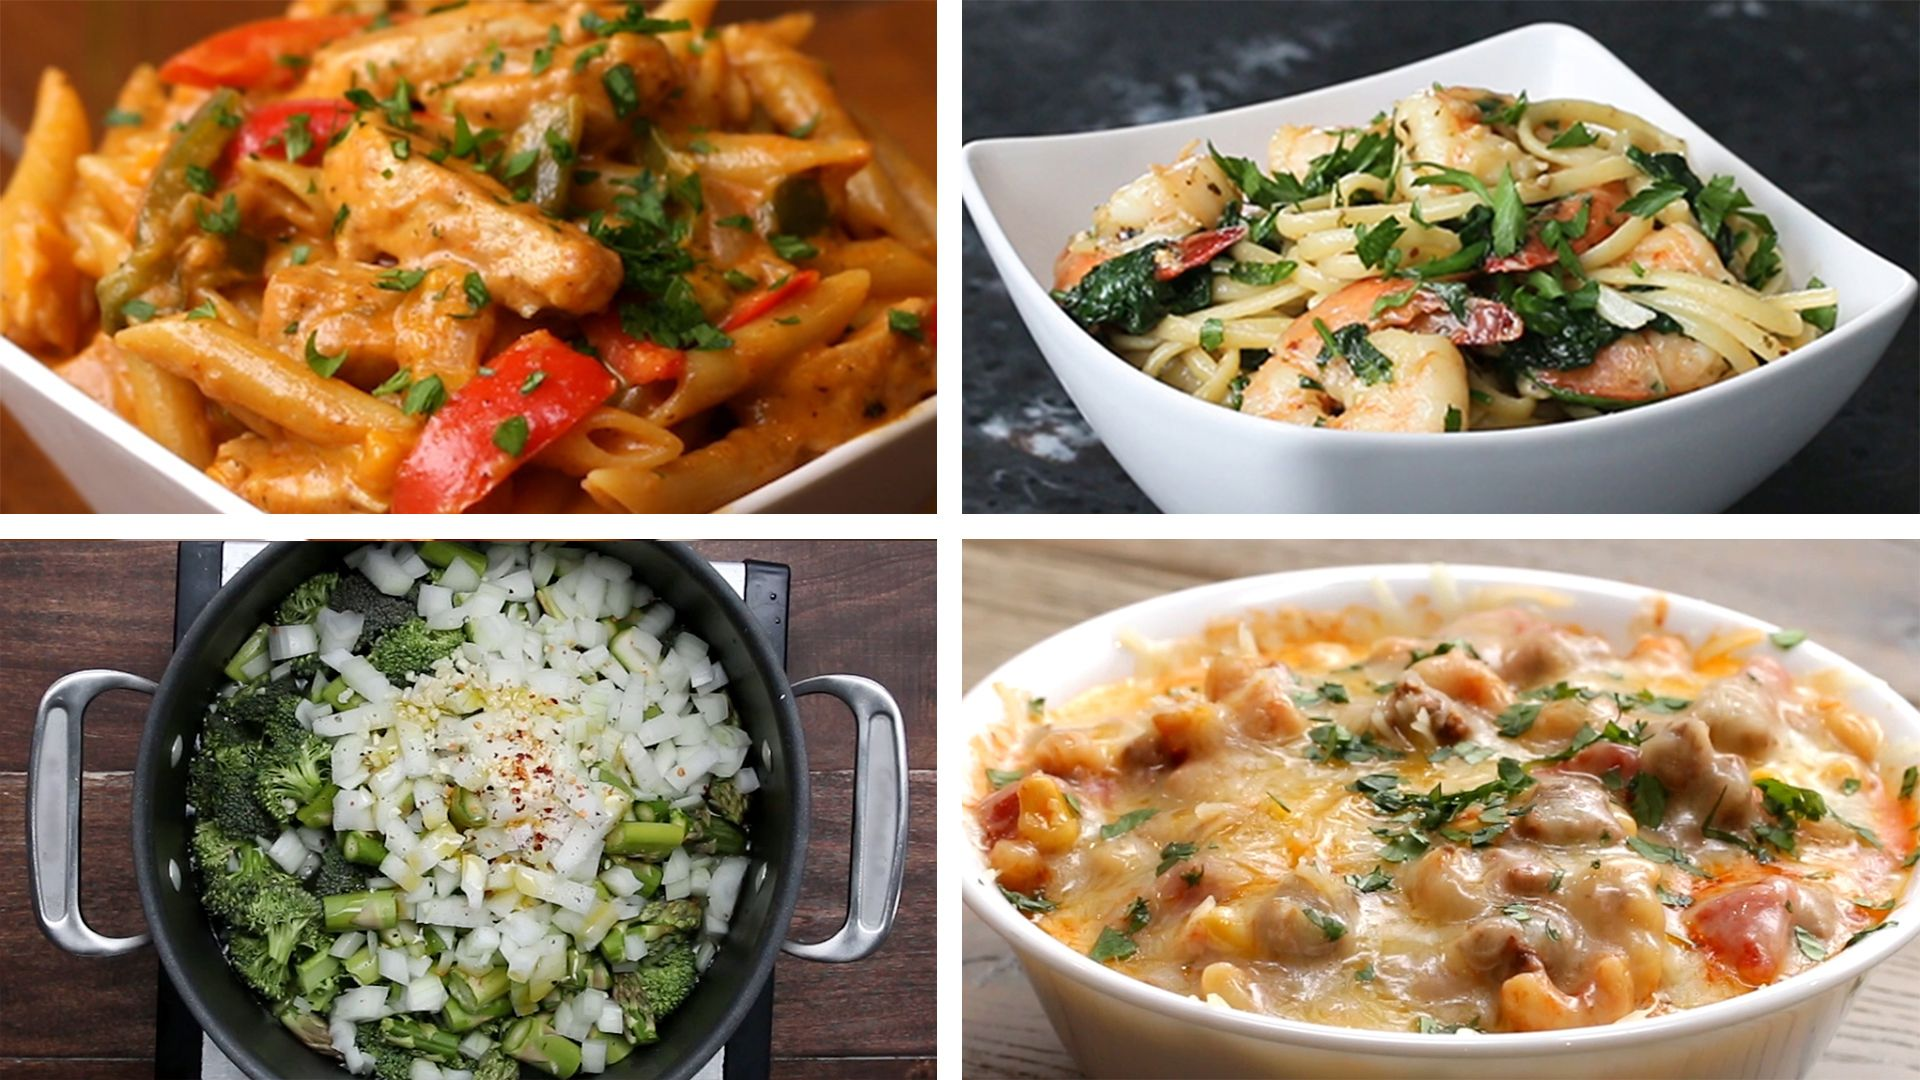 8 one pot pastas from tasty by buzzfeed food and recipes 8 one pot pastas from tasty by buzzfeed forumfinder Choice Image